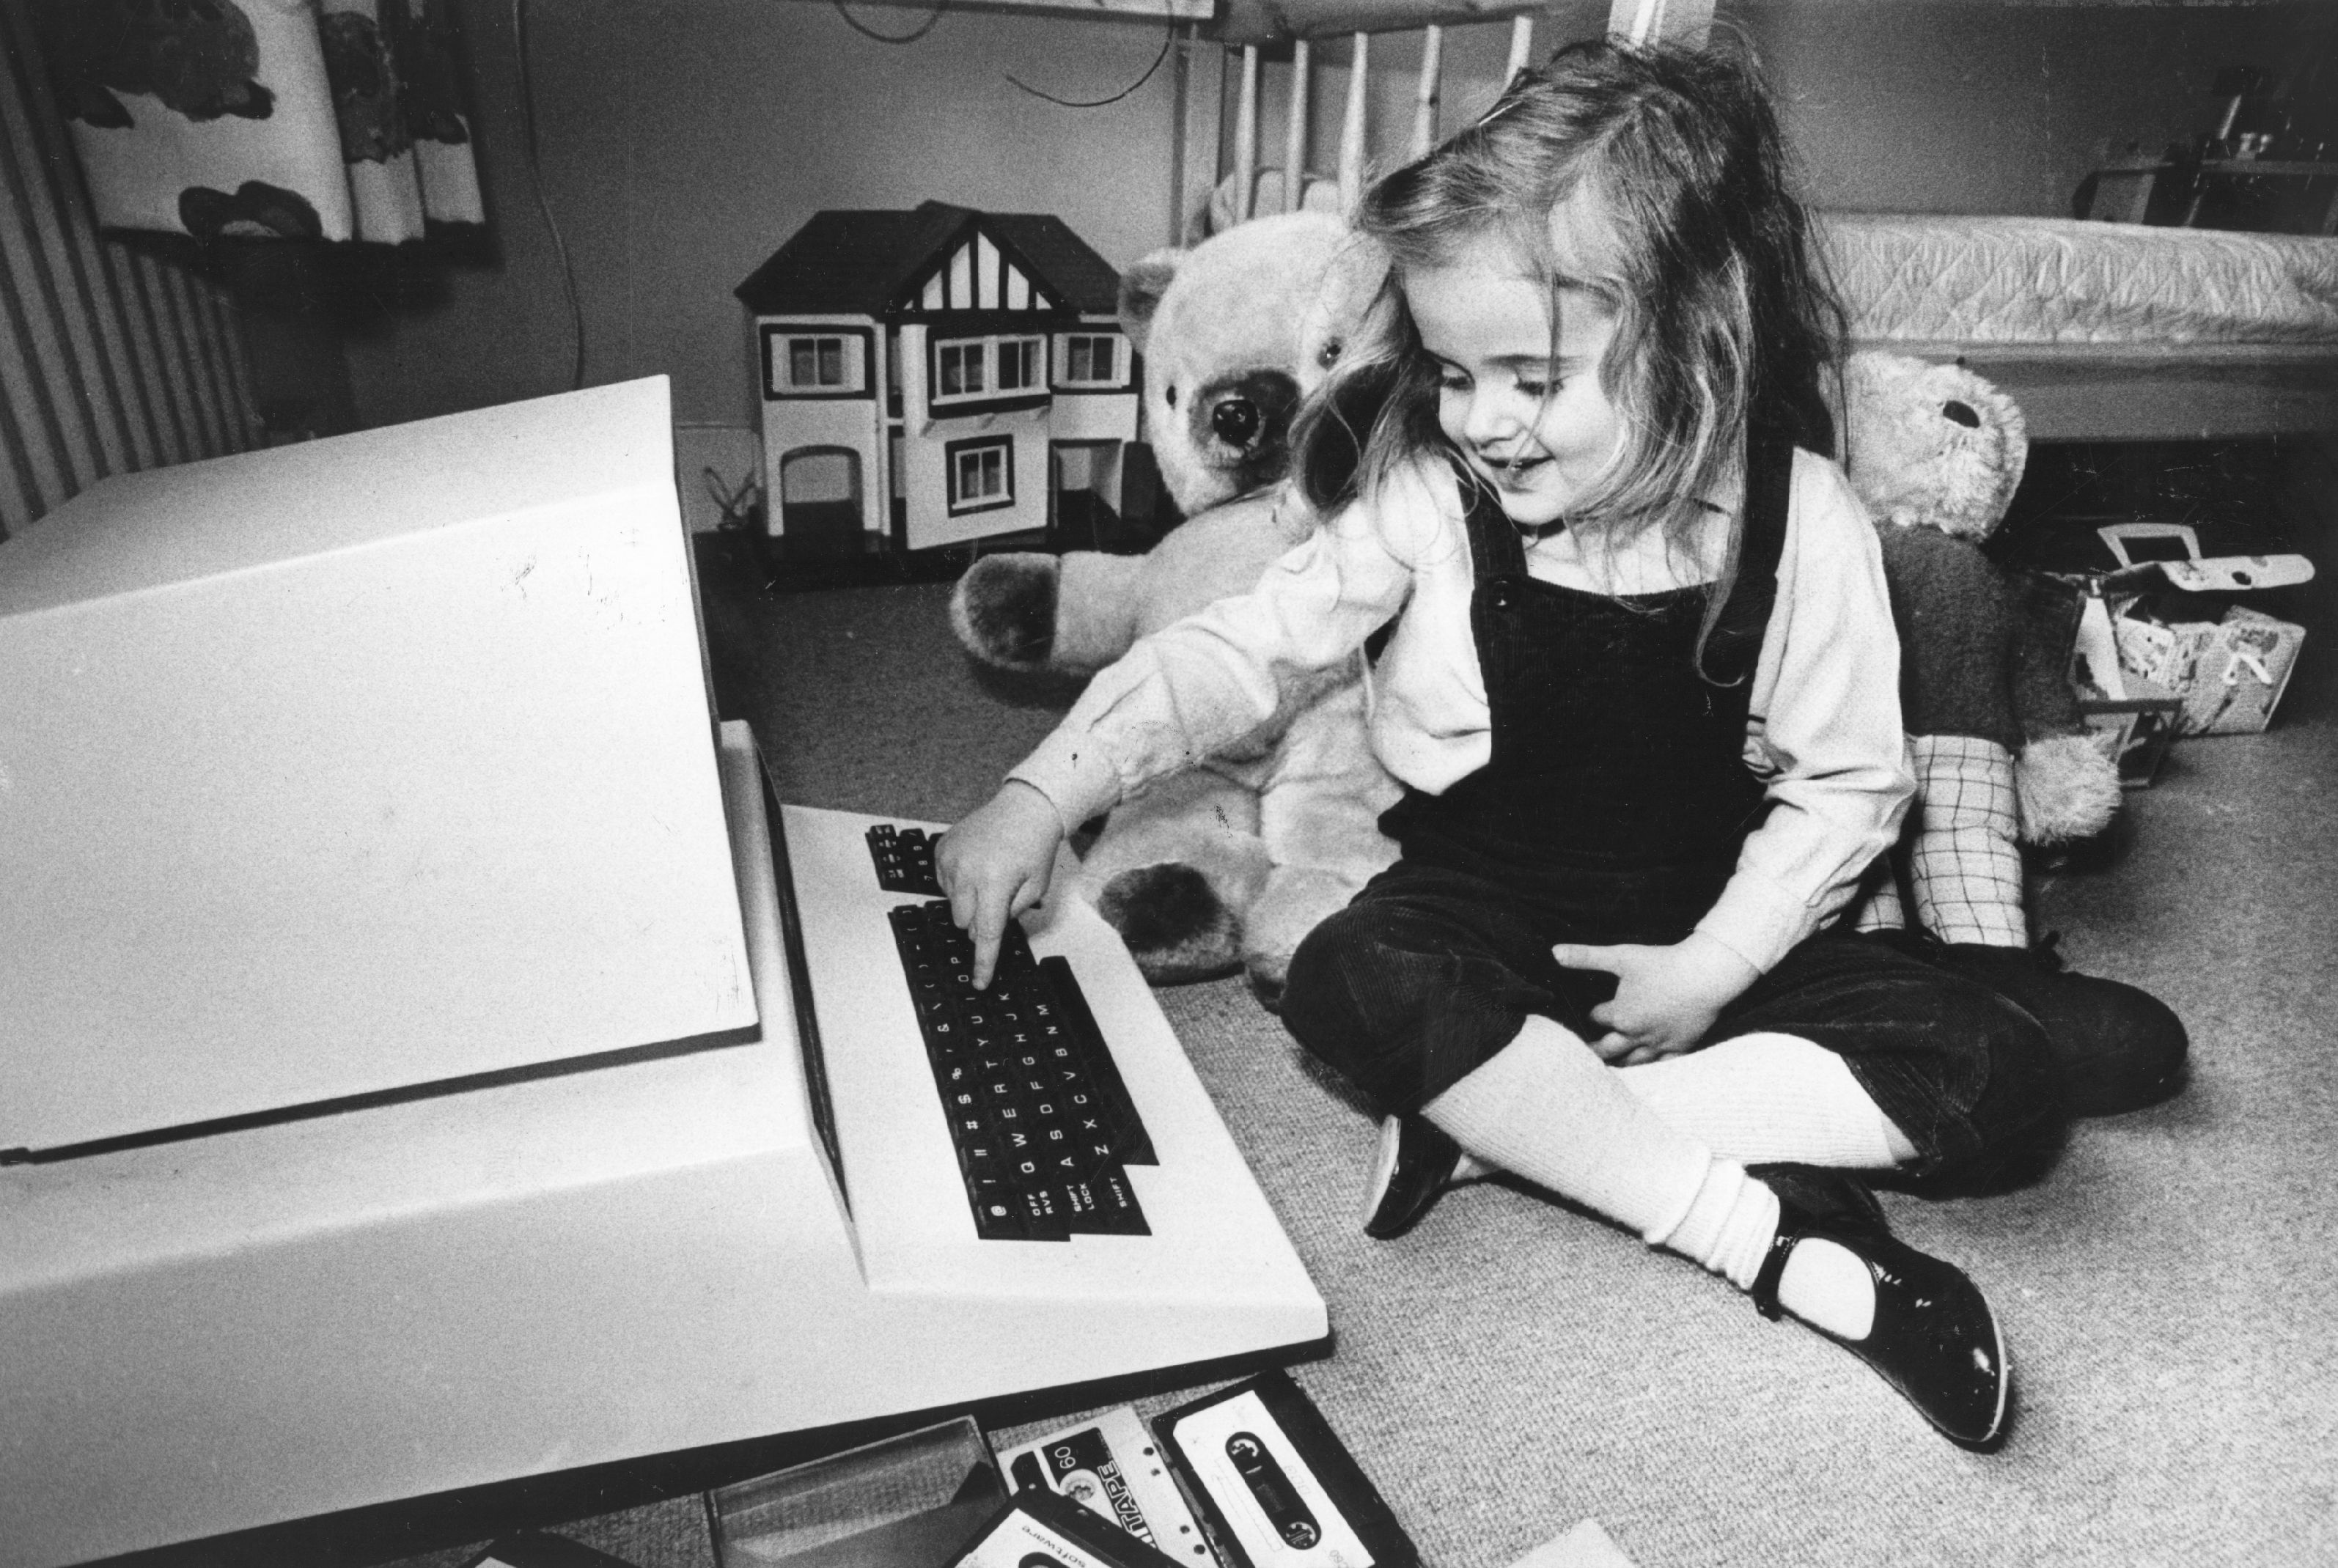 girl playing with a computer